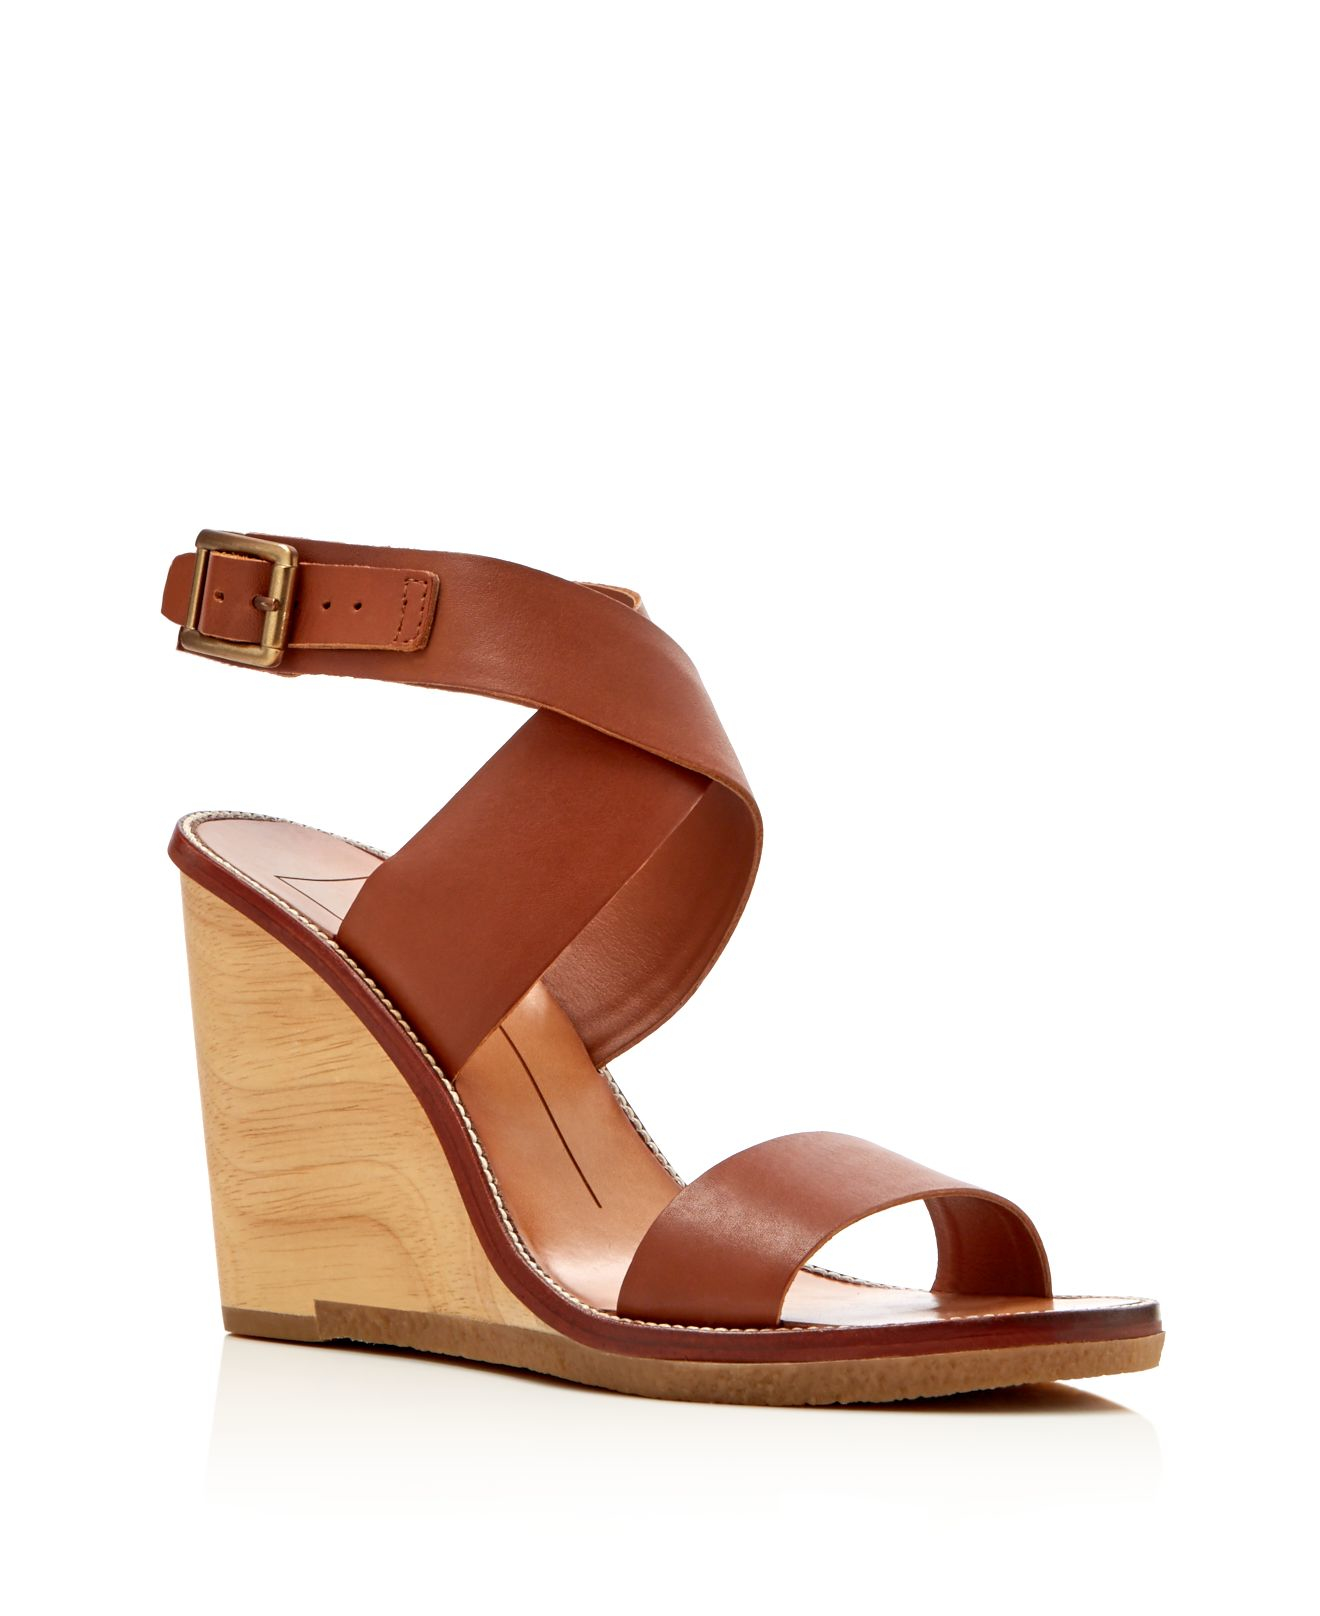 dolce vita wood wedge sandals in brown lyst